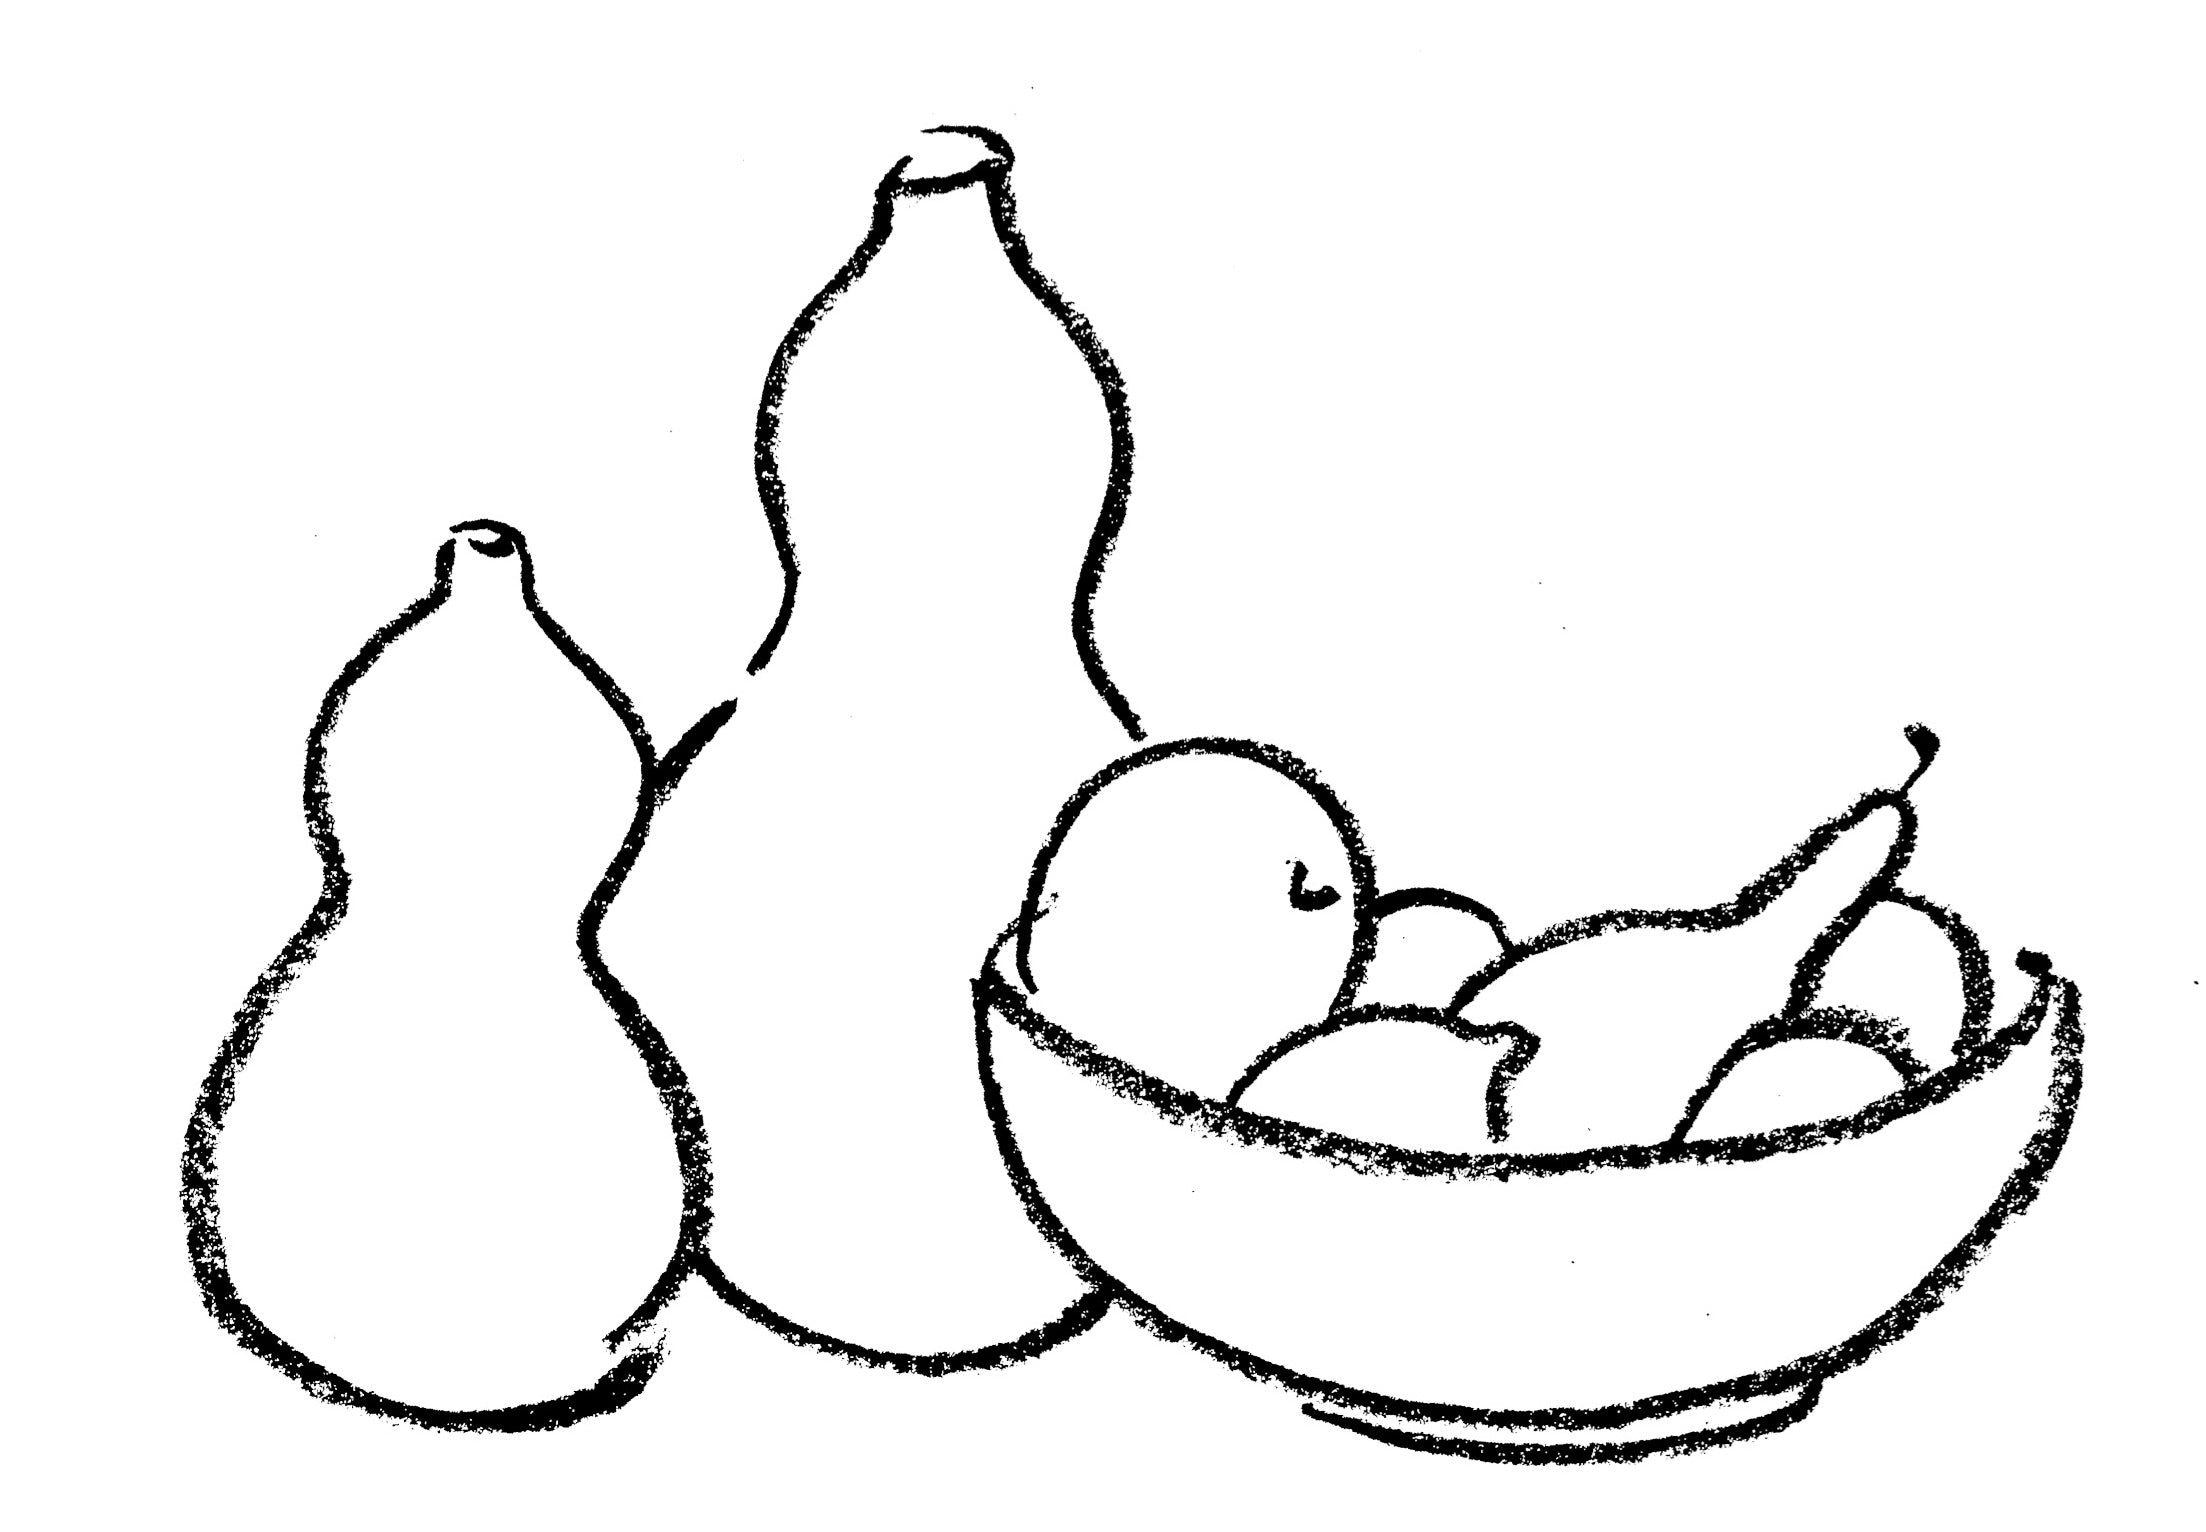 Crayon drawing of two East Fork vases and a fruit bowl.